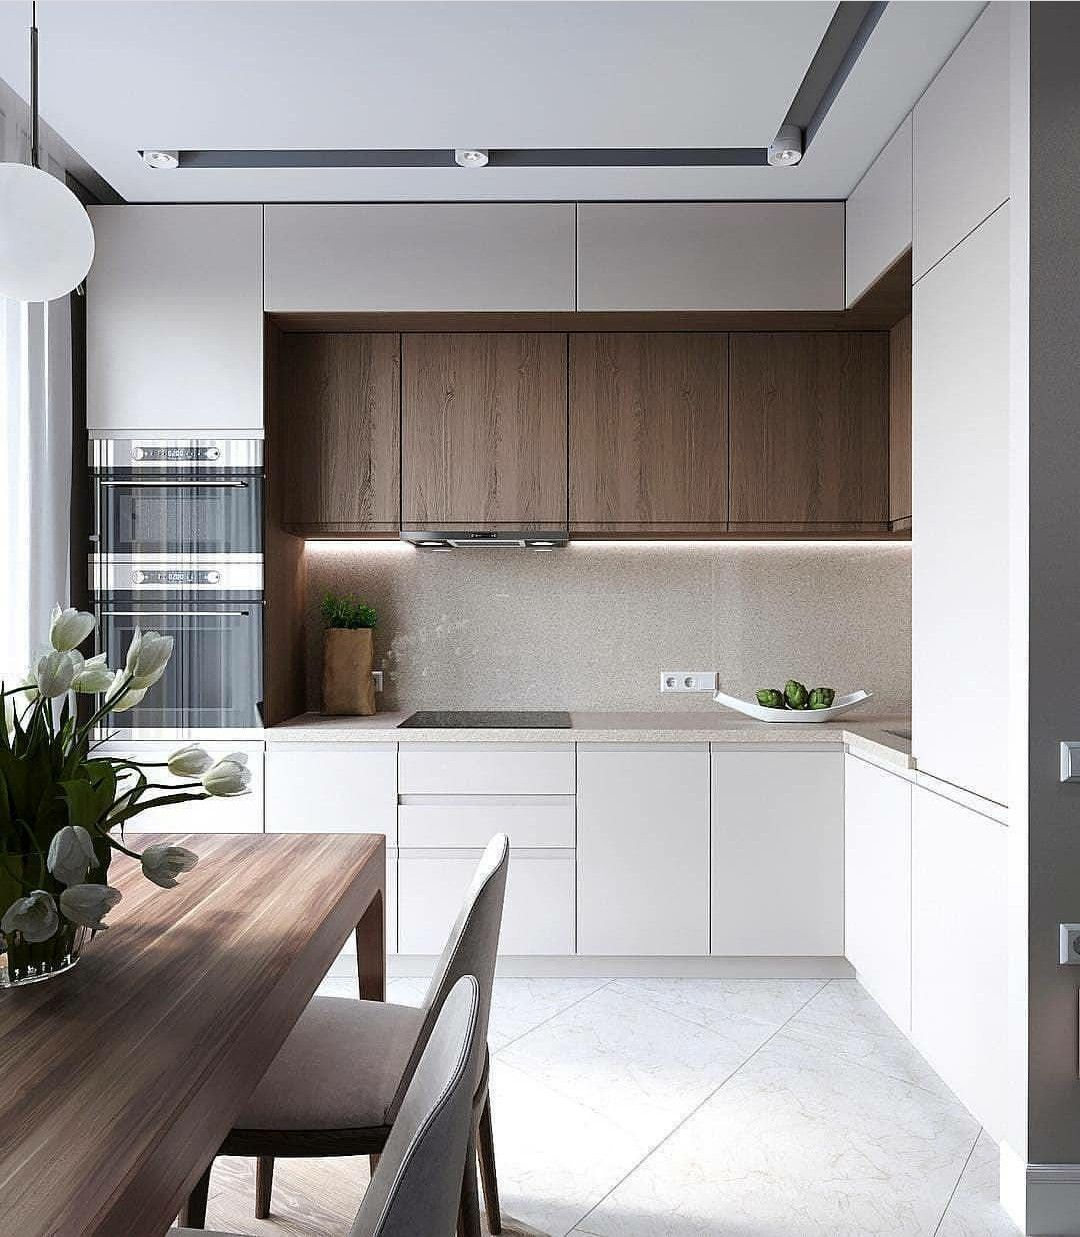 20+ Minimalist Kitchen Ideas Beautiful Simple and